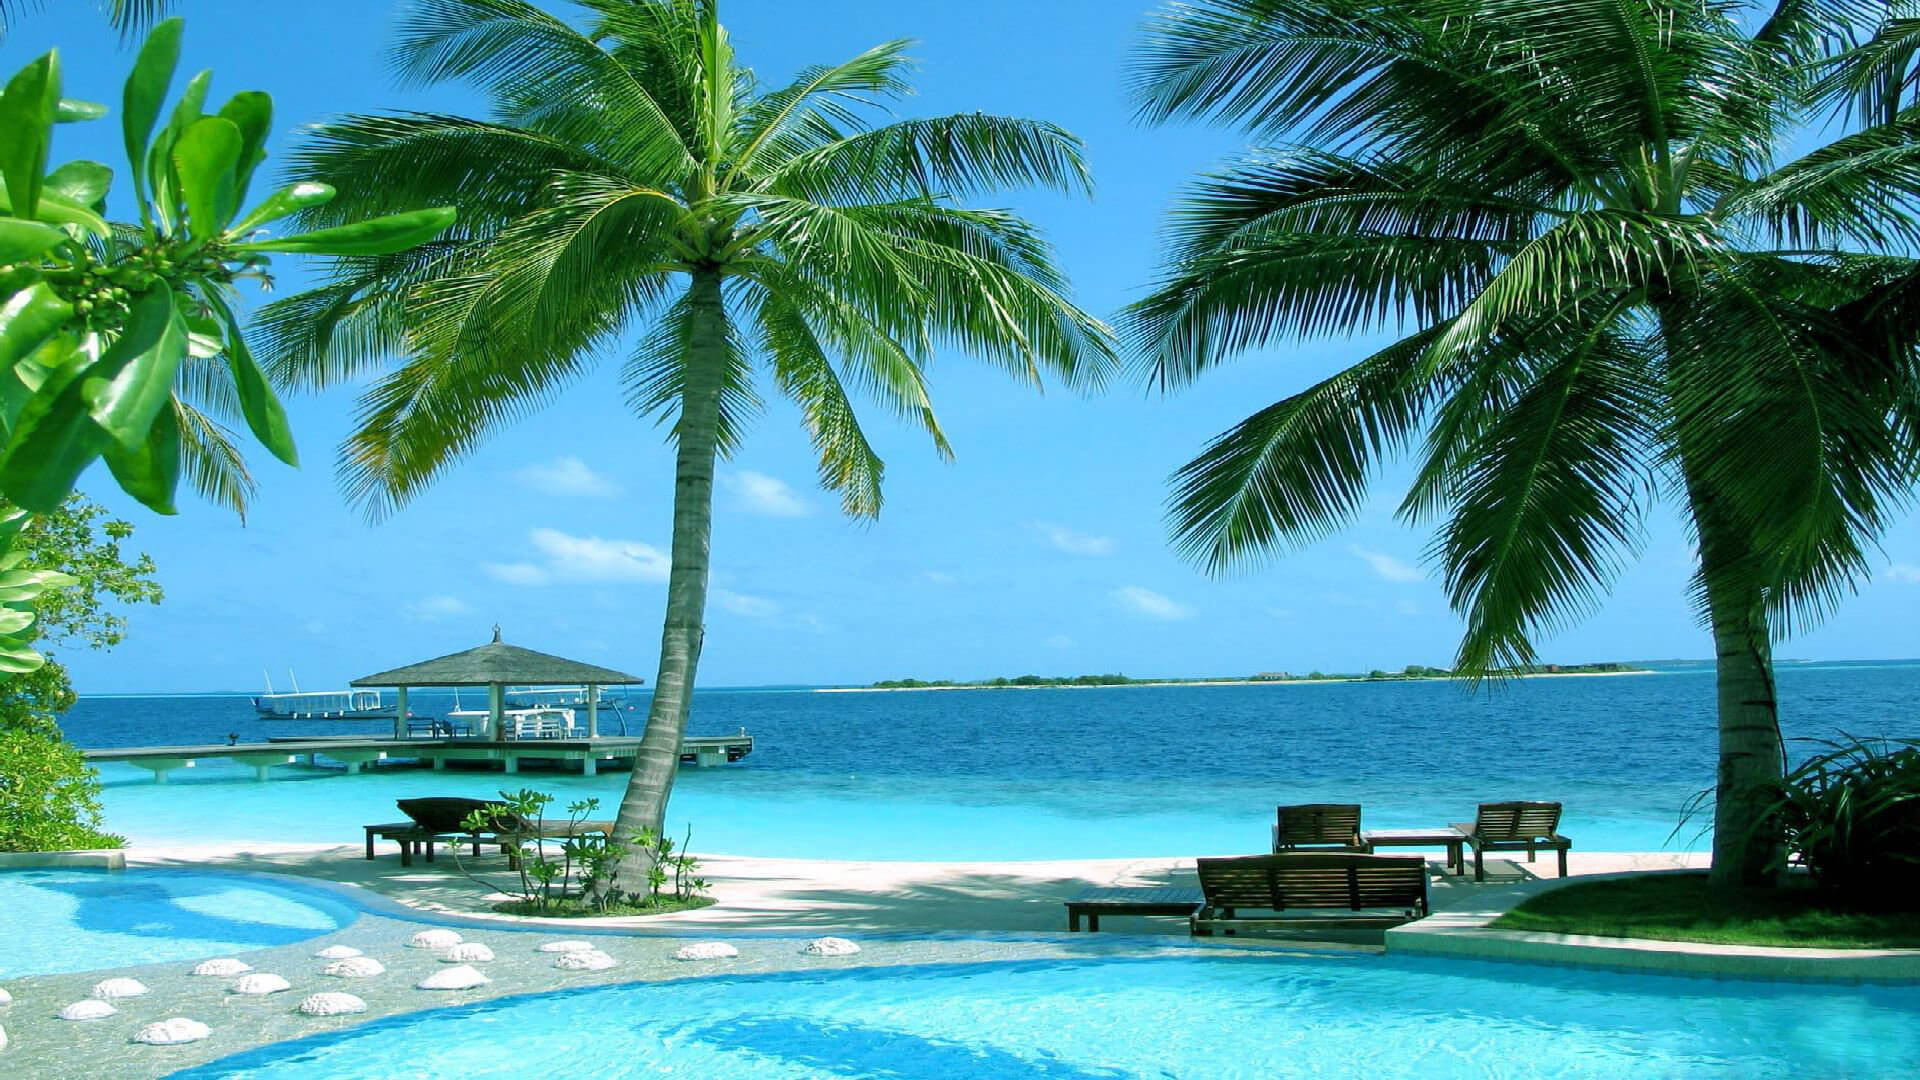 5 Days Maldives Holiday Travel & Tour Package